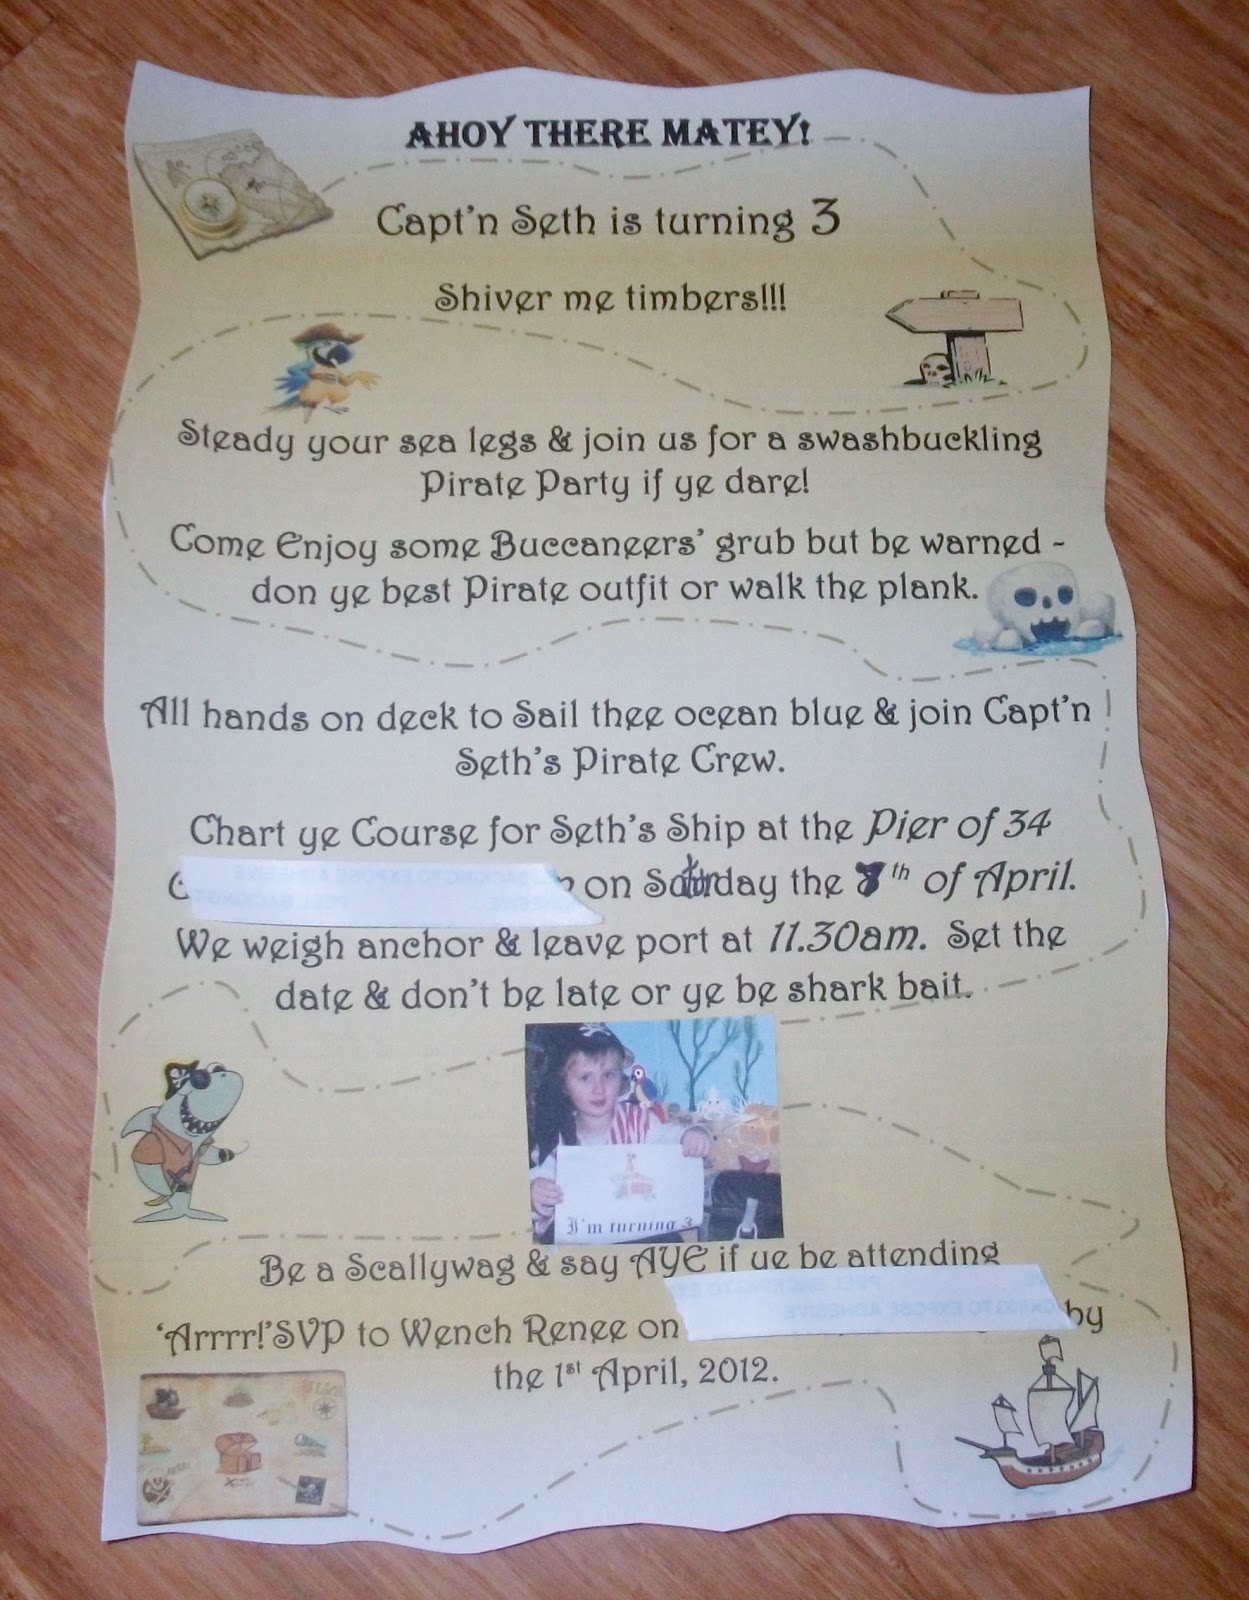 Adventures at home with Mum: Pirate Party - Invites & Decorations